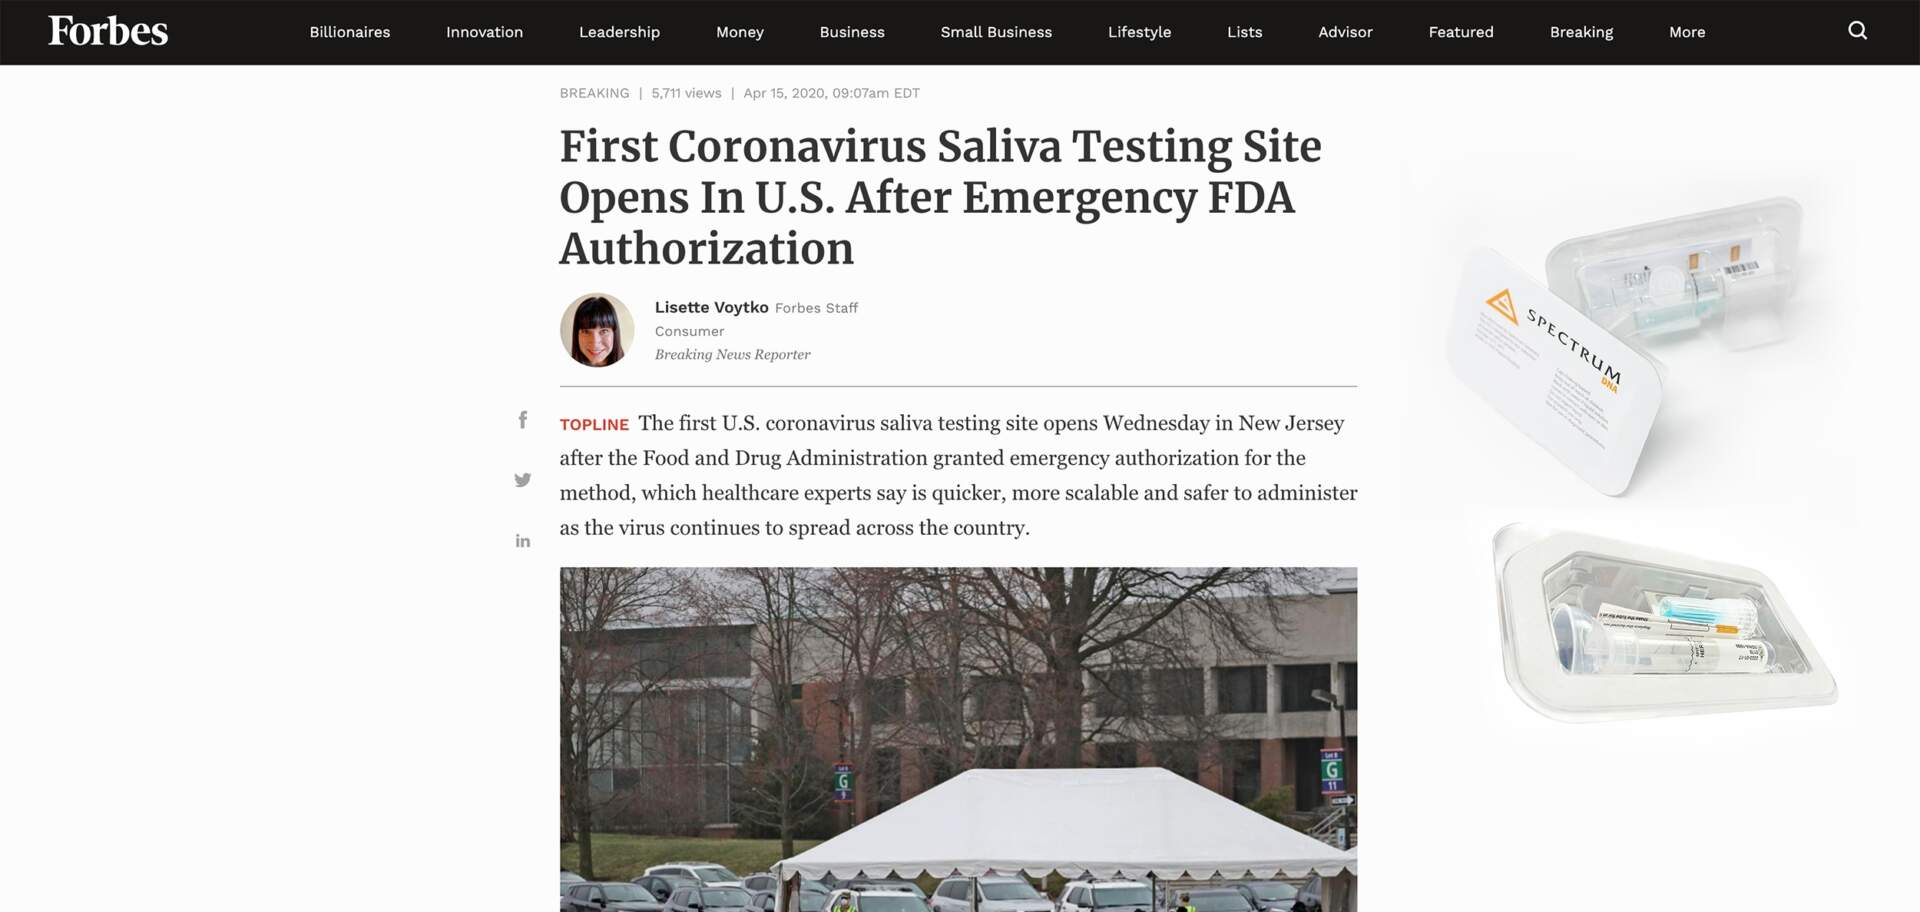 FORBES-First Coronavirus Saliva Testing Site Opens In U.S. After Emergency FDA Authorization